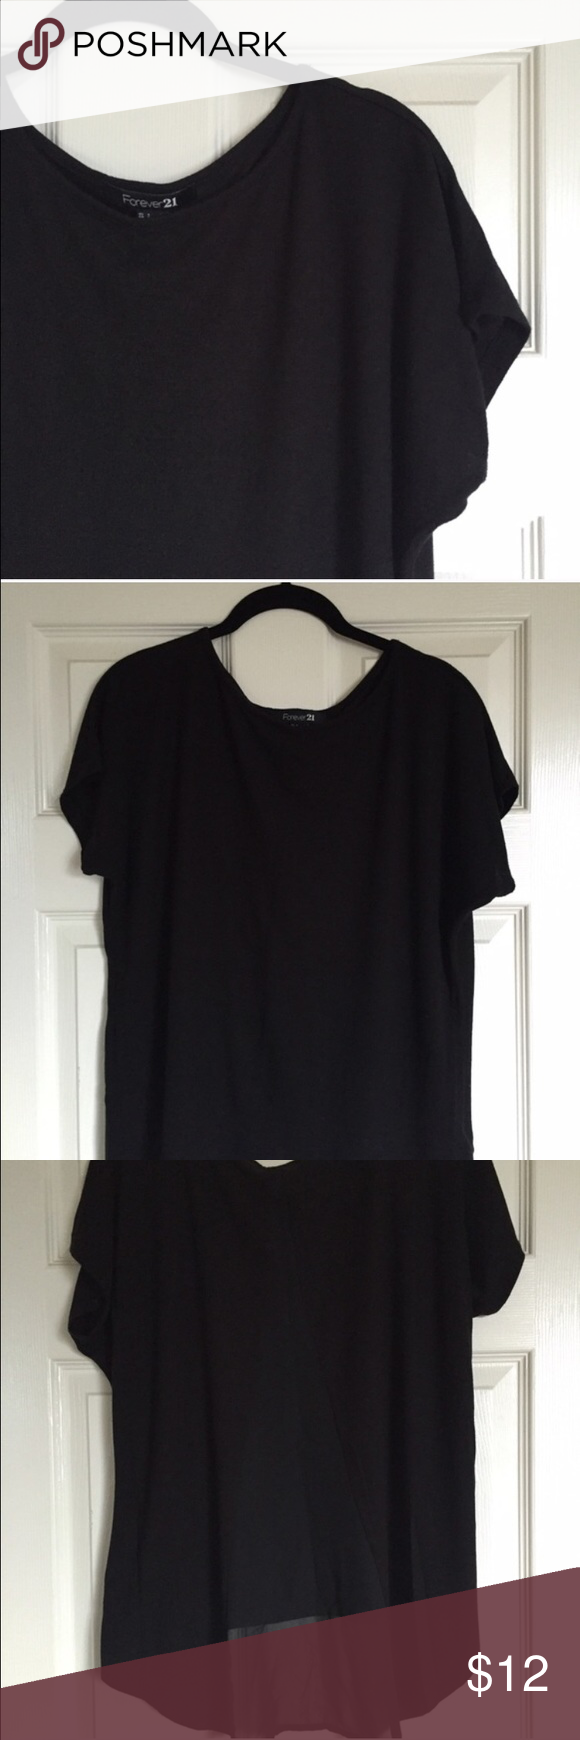 Chiffon-back top - black Cute paired with jeans/shorts - super soft! Forever 21 Tops